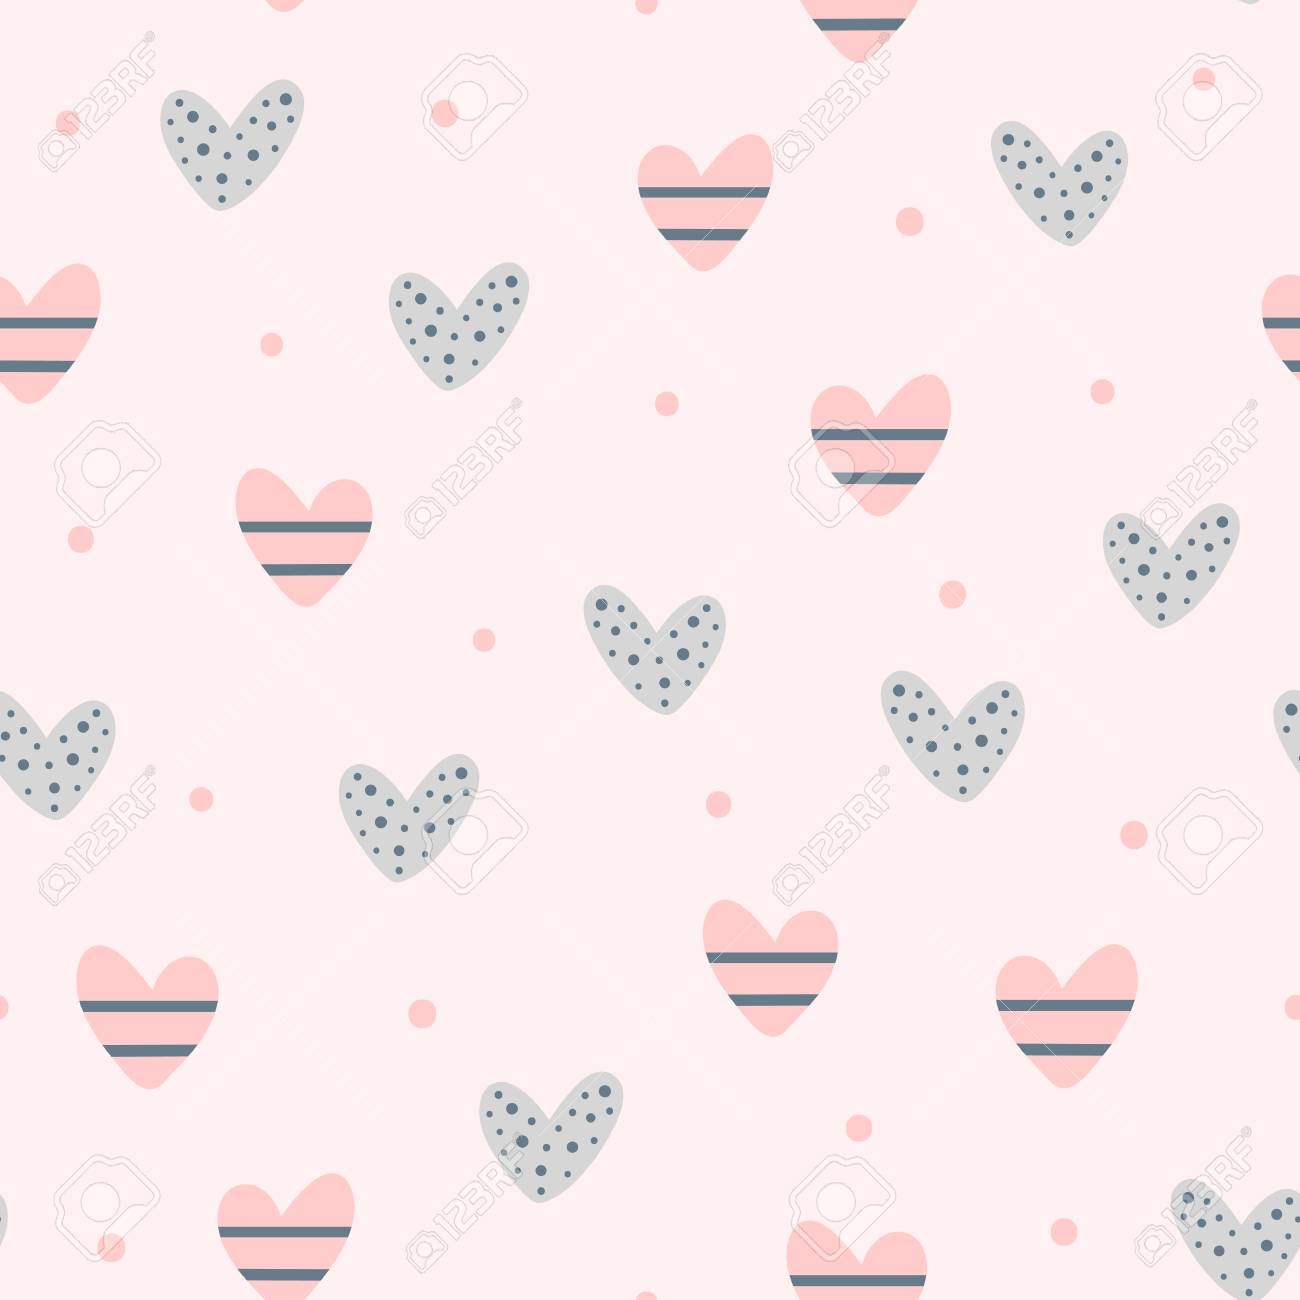 Repeating cute hearts and round dots. Romantic seamless pattern. Endless lovely print. Vector illustration. - 102095226